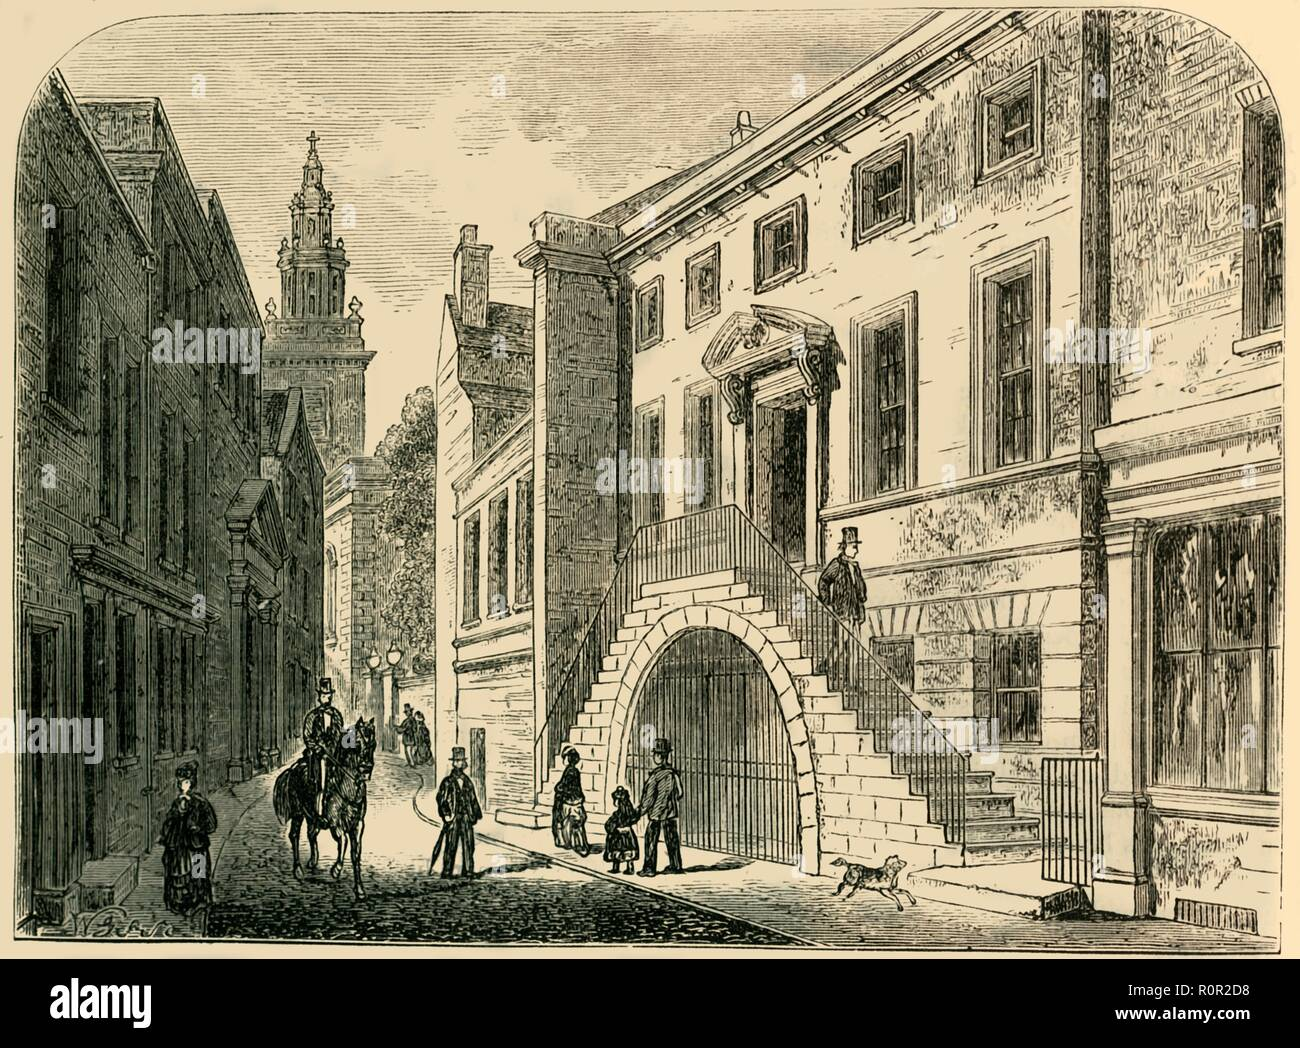 'Dyers' Hall', c1830, (c1872). Dyers' Hall, on the corner of College Street and Dowgate Hill, in the City of London, home of the Worshipful Company of Dyers. The building seen here was constructed c1770. From Old and New London, Vol. II: A Narrative of Its History, Its People, and Its Places, by Walter Thornbury. [Cassell, Petter, Galpin & Co., London, Paris & New York] - Stock Image